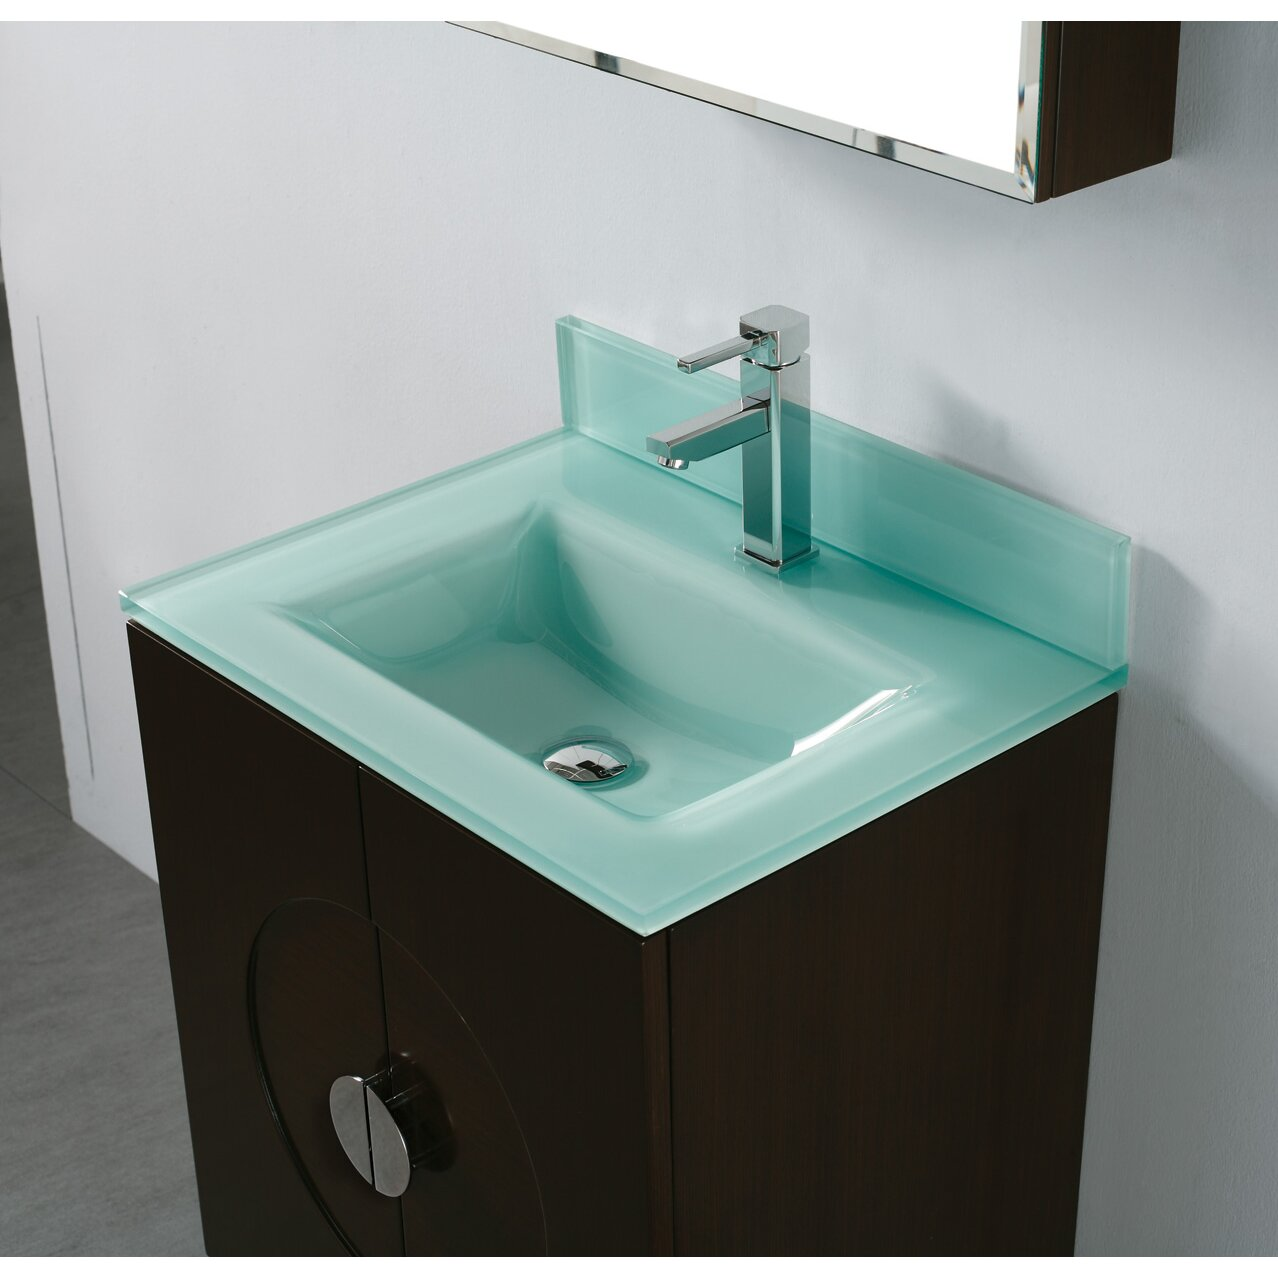 All In One Bathroom Sink And Countertop : Madeli Tempered Glass Countertop Bathroom Sink & Reviews Wayfair